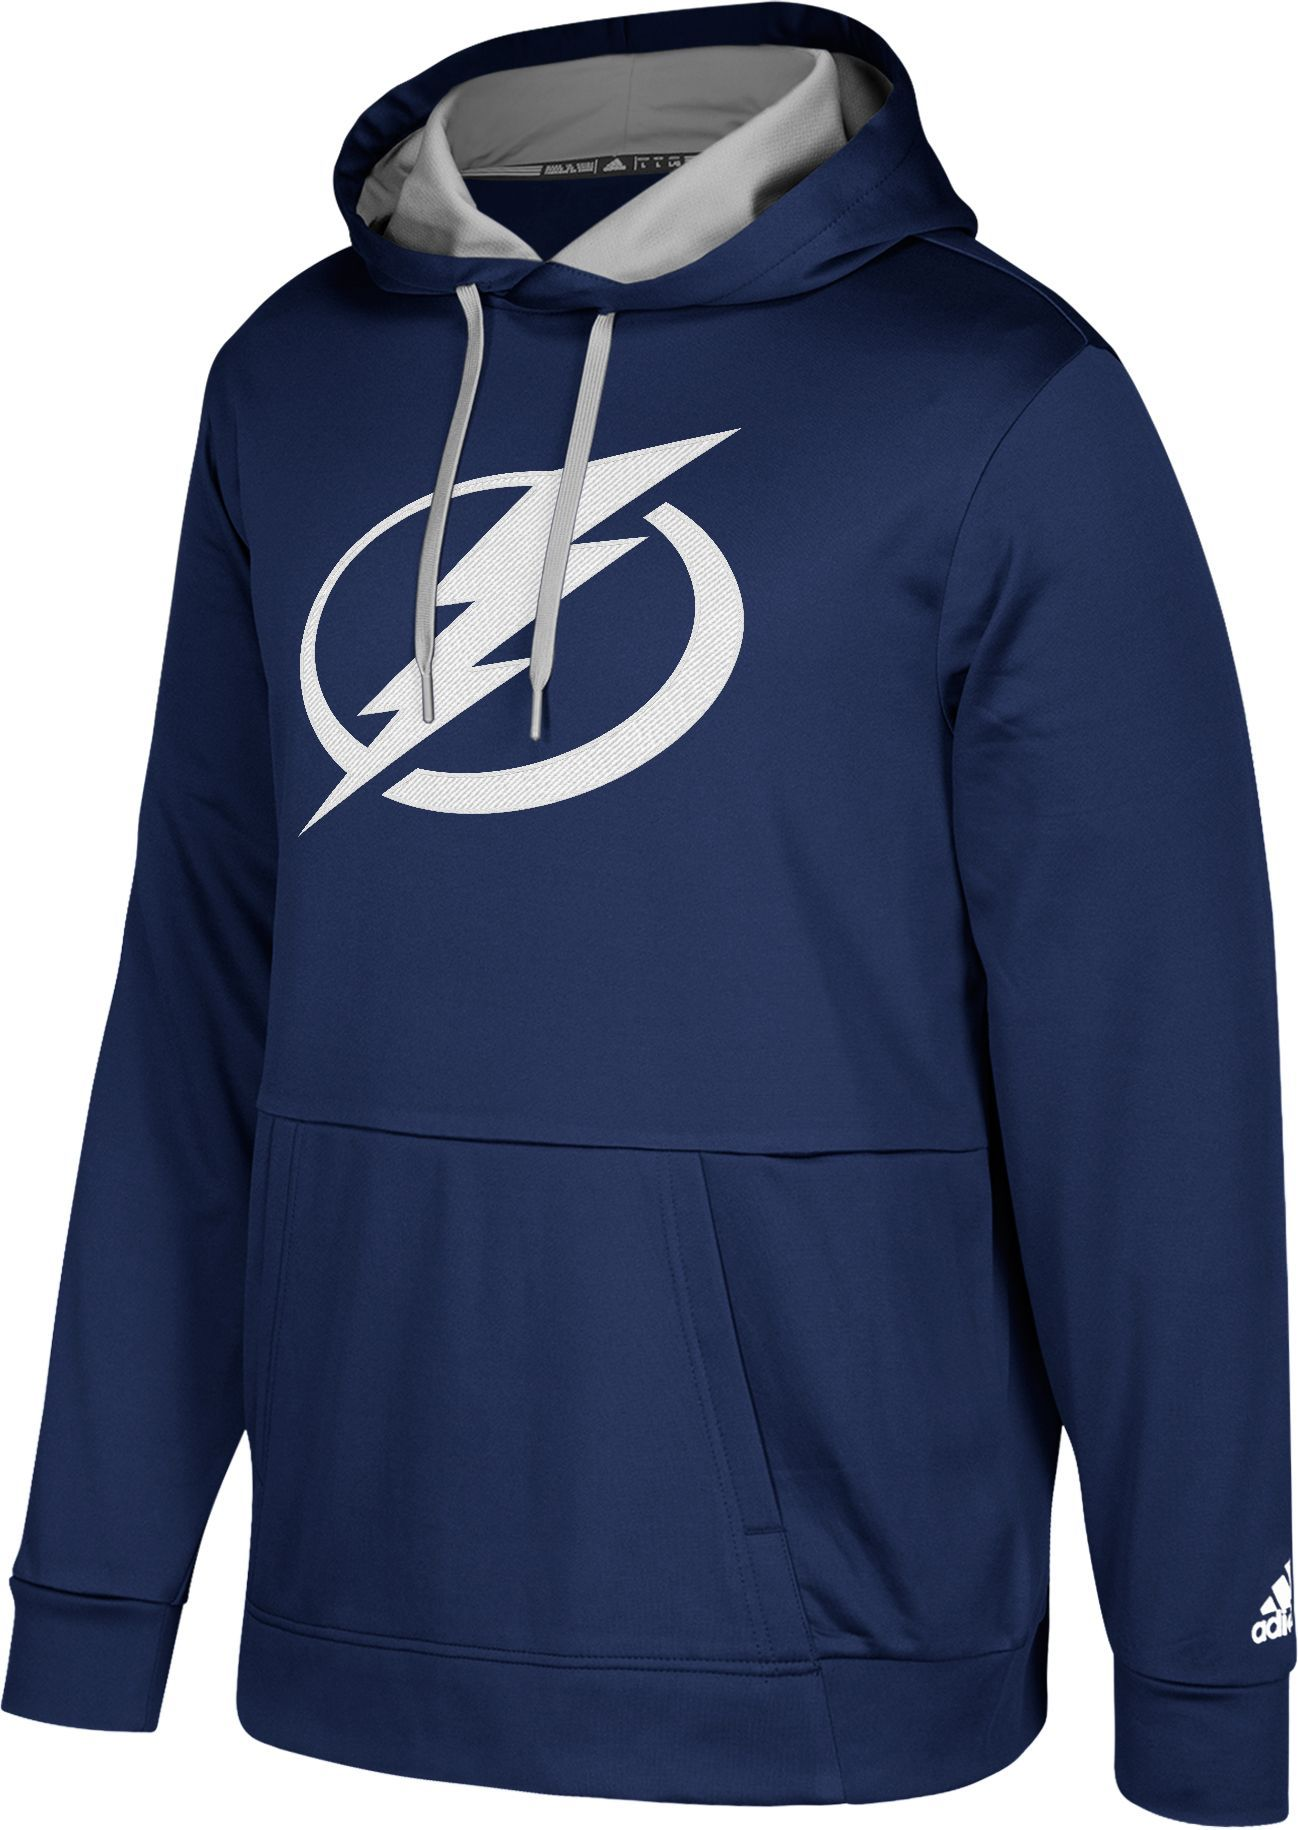 brand new 6be7d d63ab adidas Men's Tampa Bay Lightning Navy Performance Pullover ...